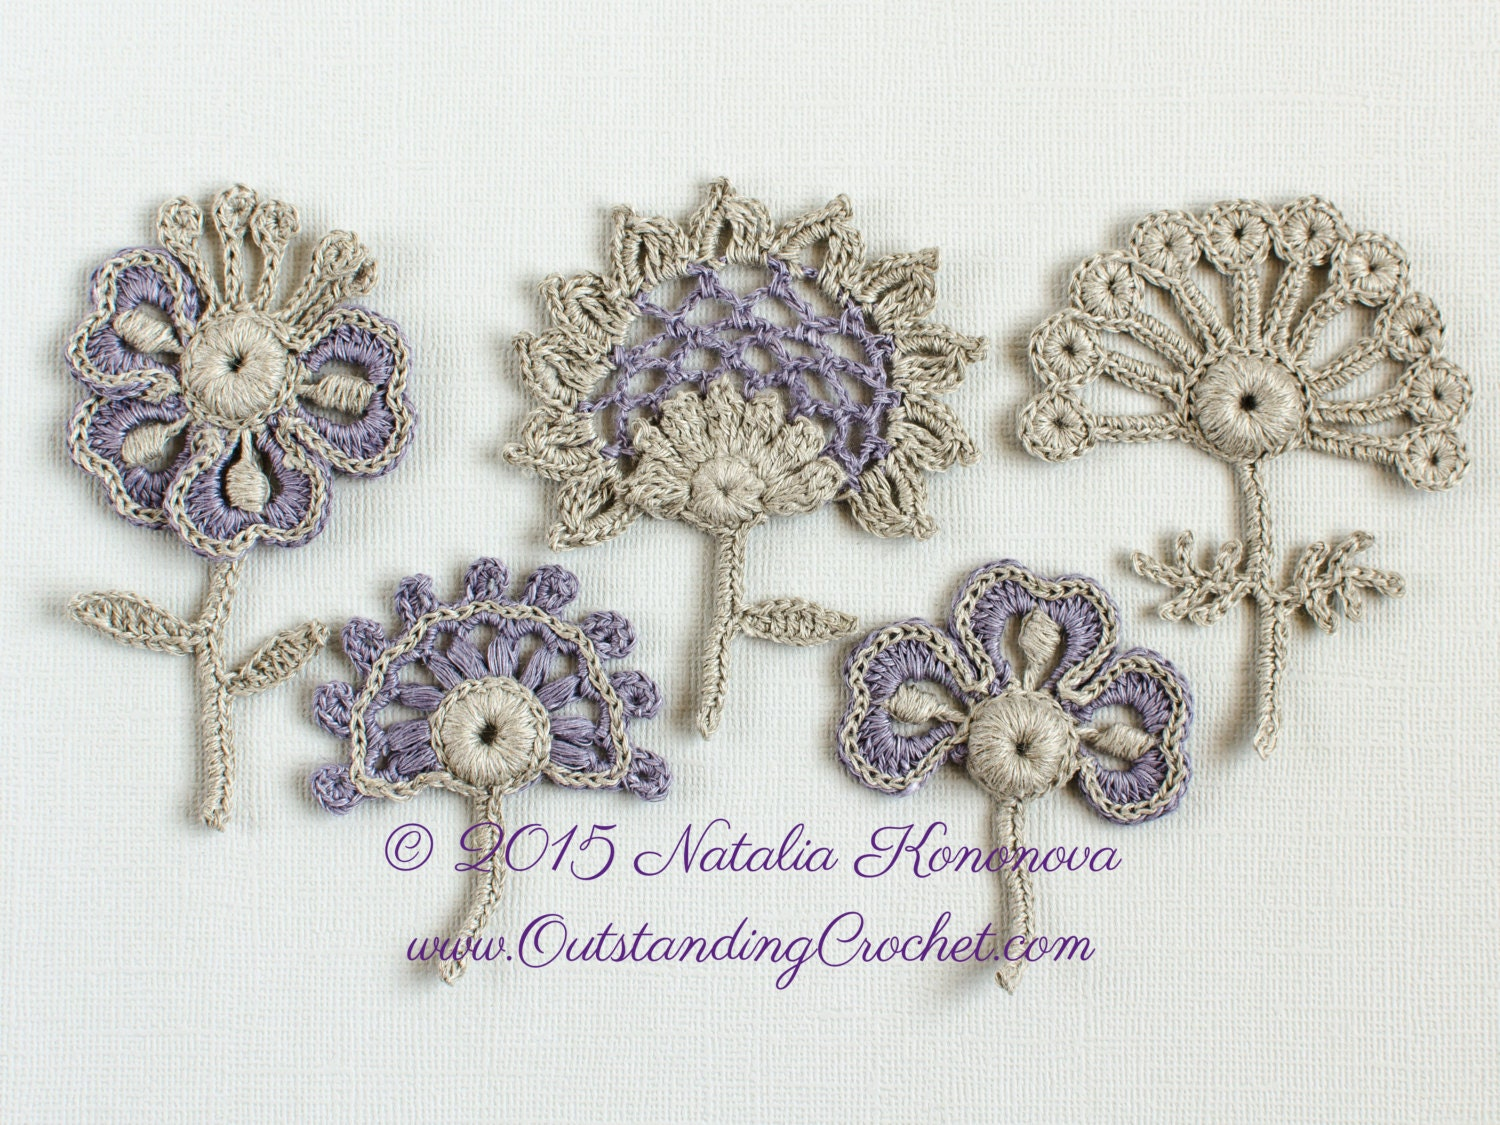 Irish crochet applique pattern flowers set lace motifs set of irish crochet applique pattern flowers set lace motifs set of 5 with discount crochet decor crochet embellishment pdf dt1010fo